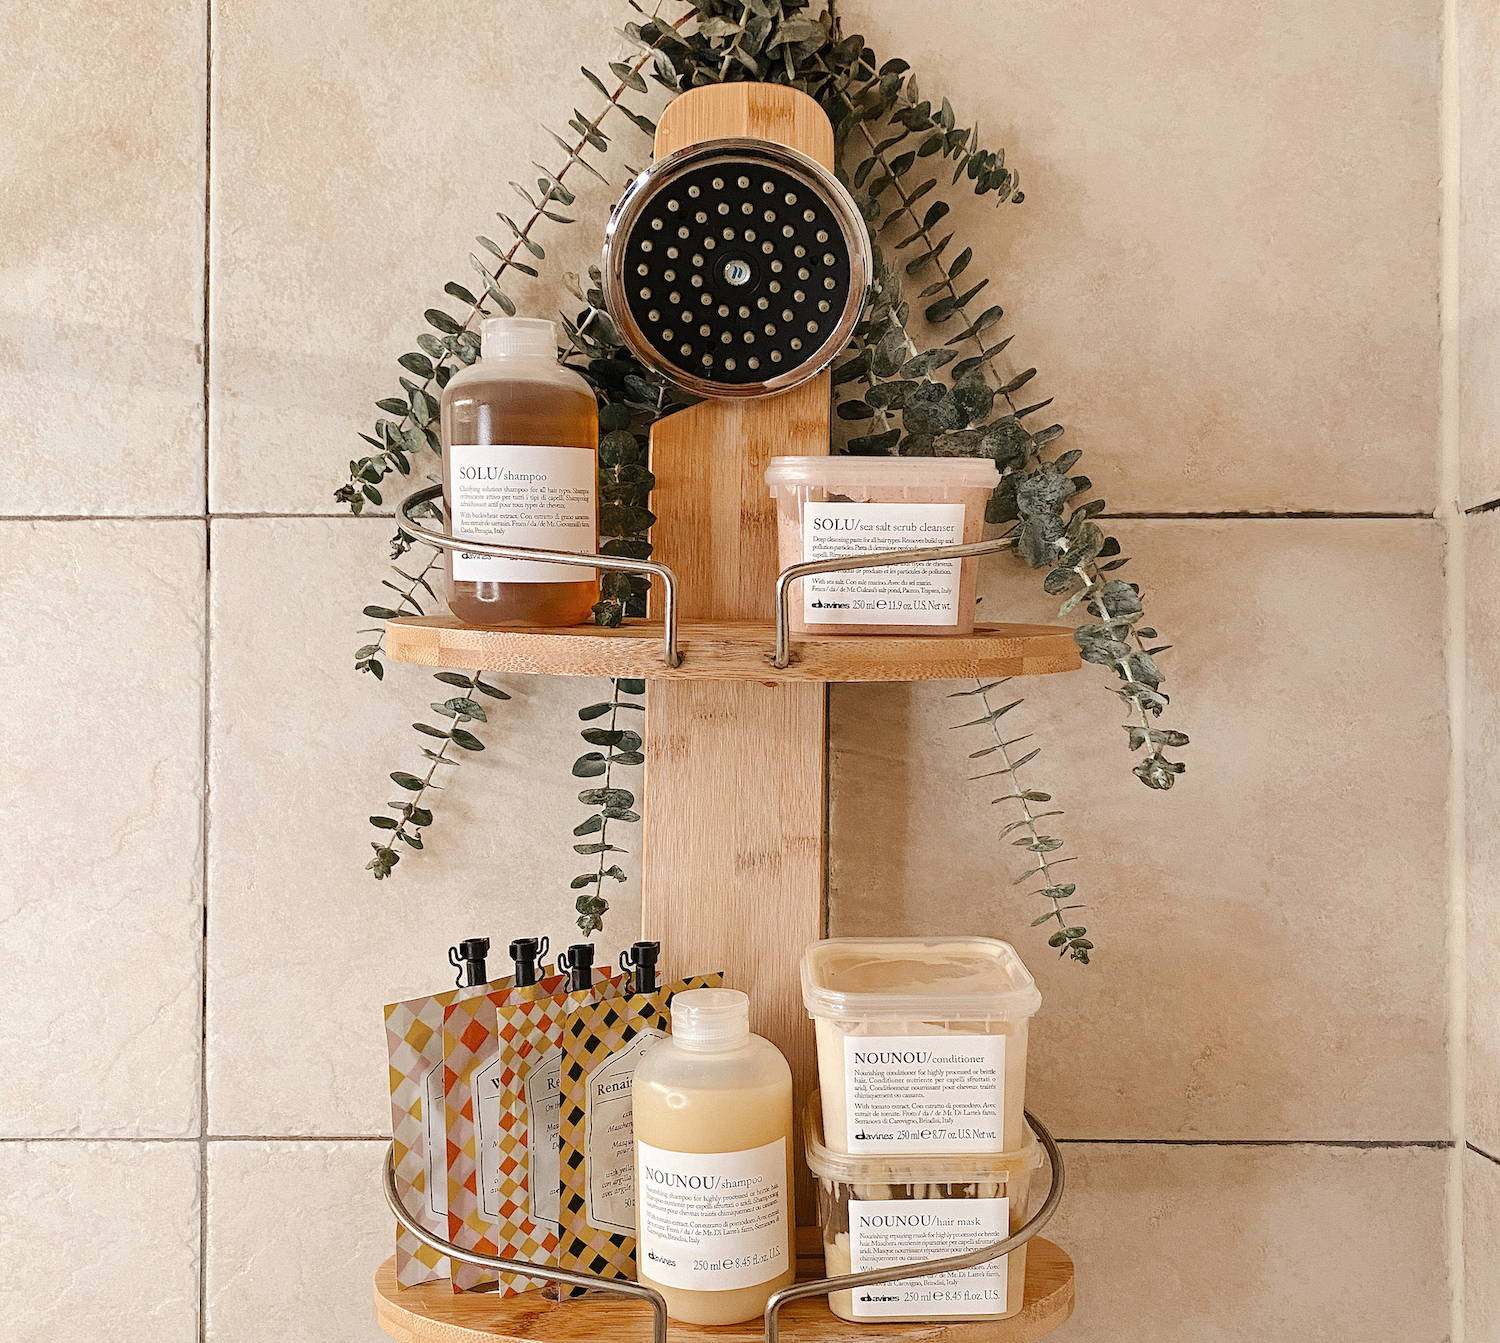 Davines products pre-poo shower shot